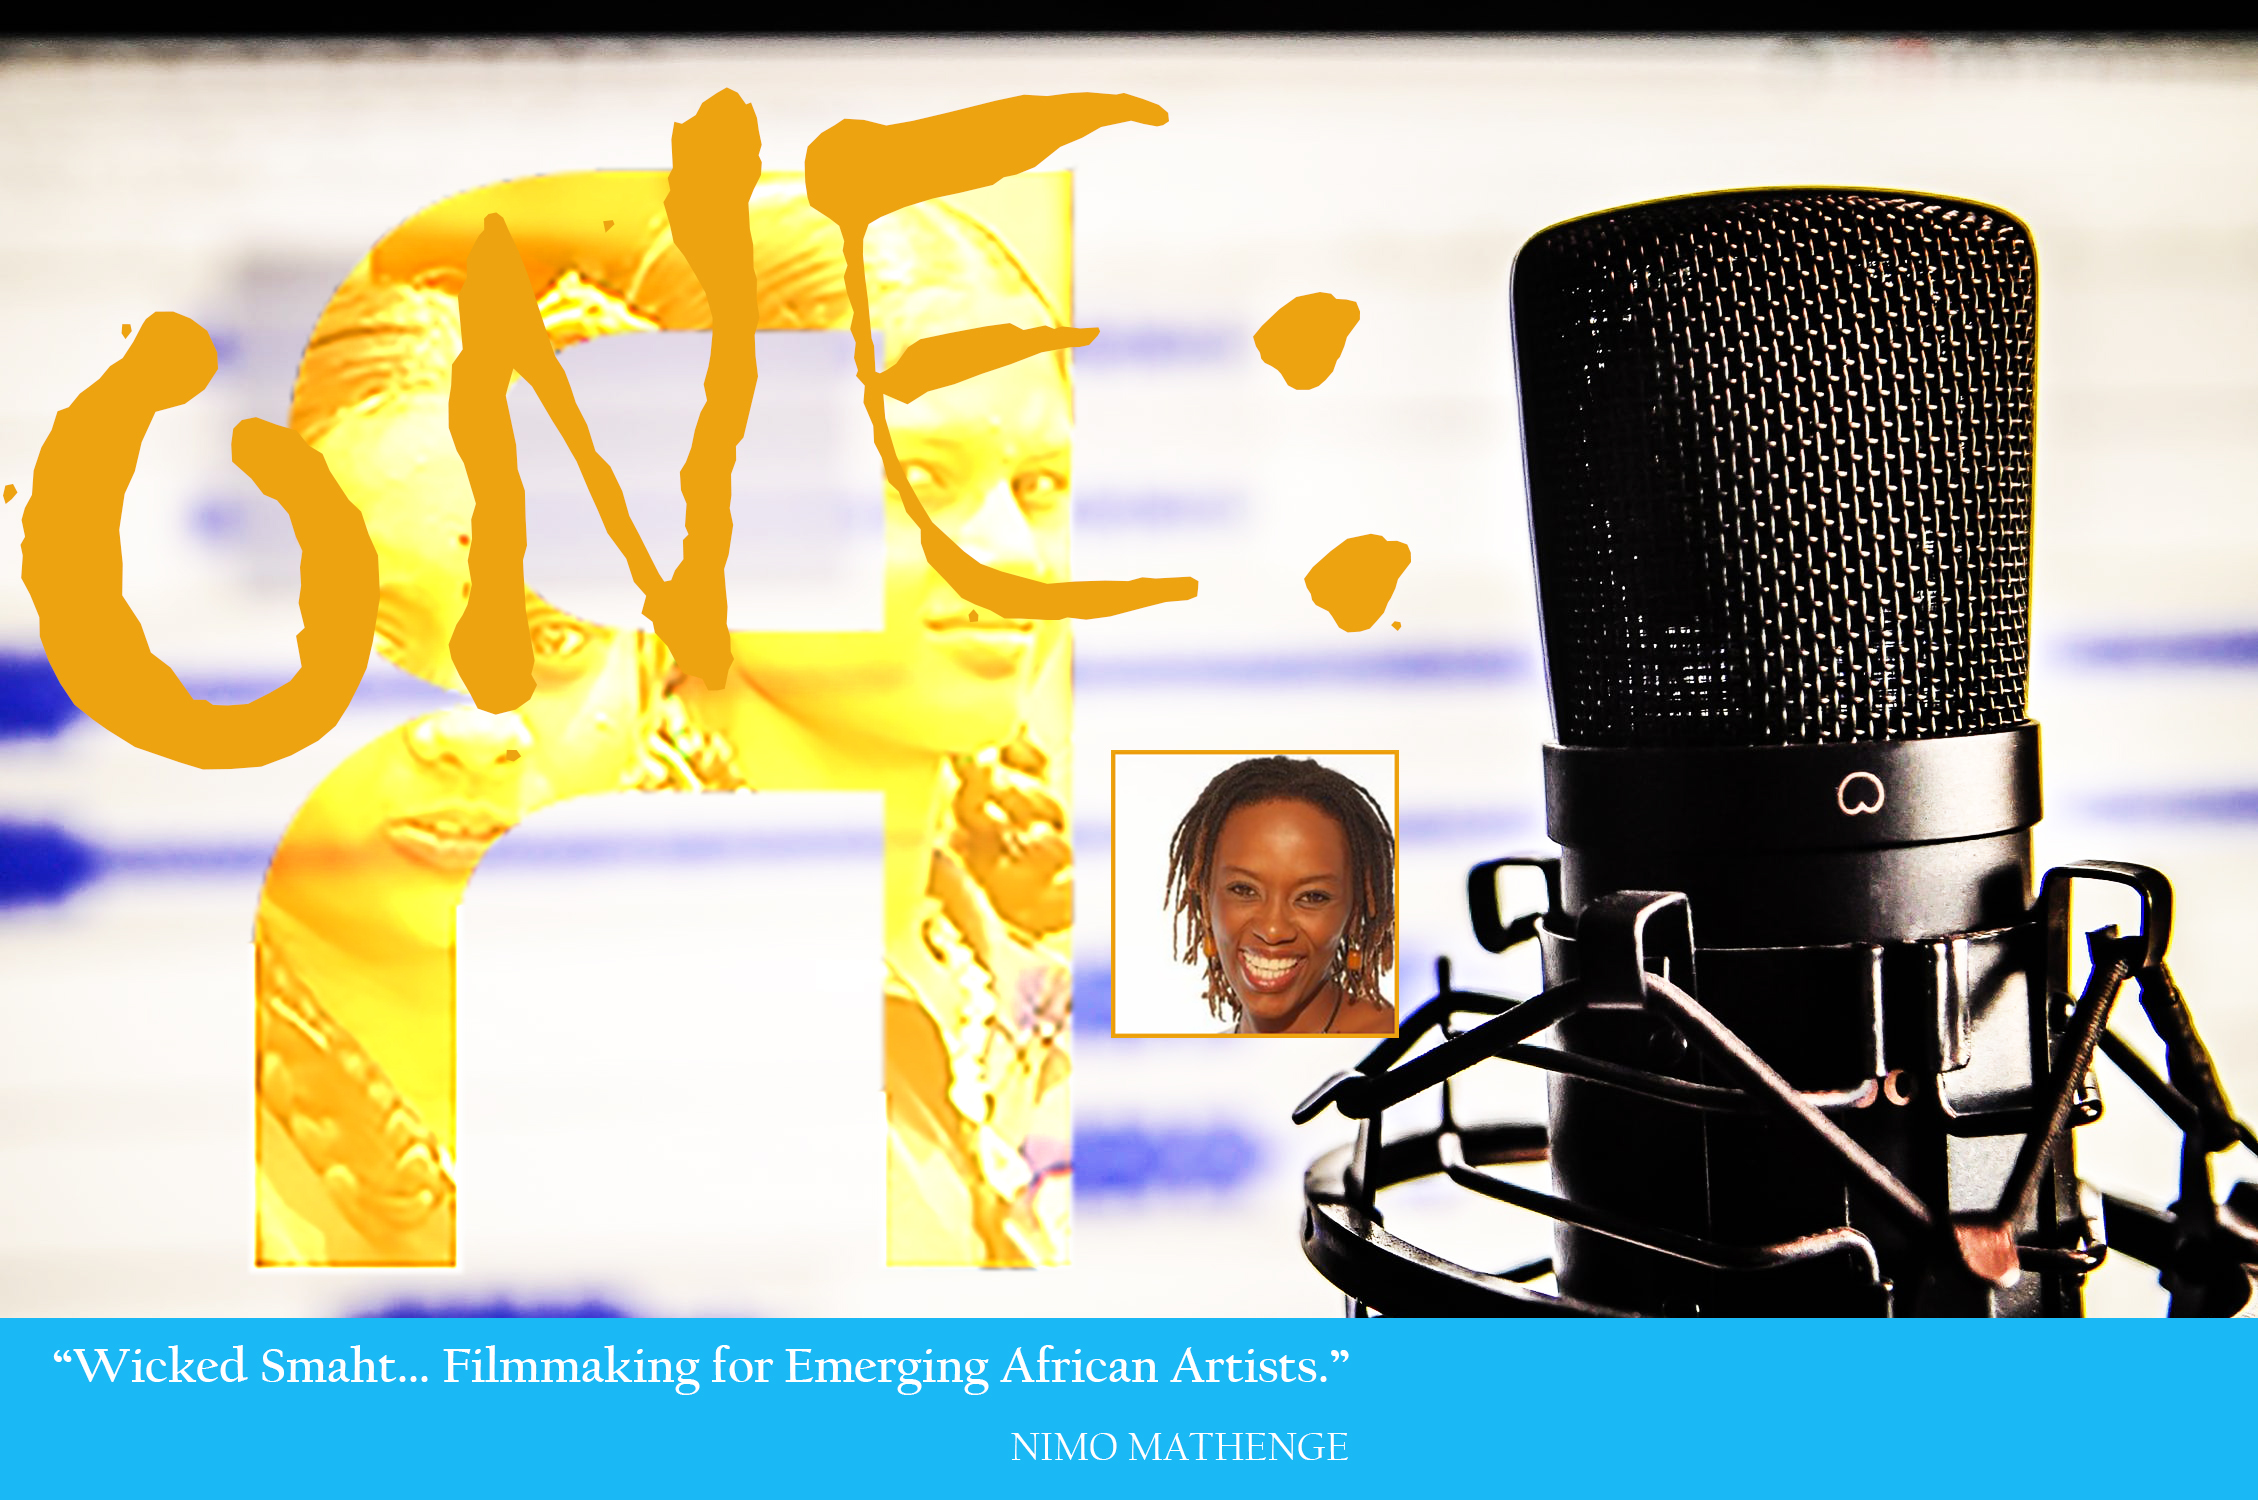 """- """"Wicked Smaht... Filmmaking for Emerging African Artists.""""Filmmaker and Executive Producer shares her dreams and mission to elevate African artists in independent film. Hear about her journey and the projects she has worked on. An inspiring woman who has beat the odds... and she's just getting started. Wicked Smaht... from Harvard."""